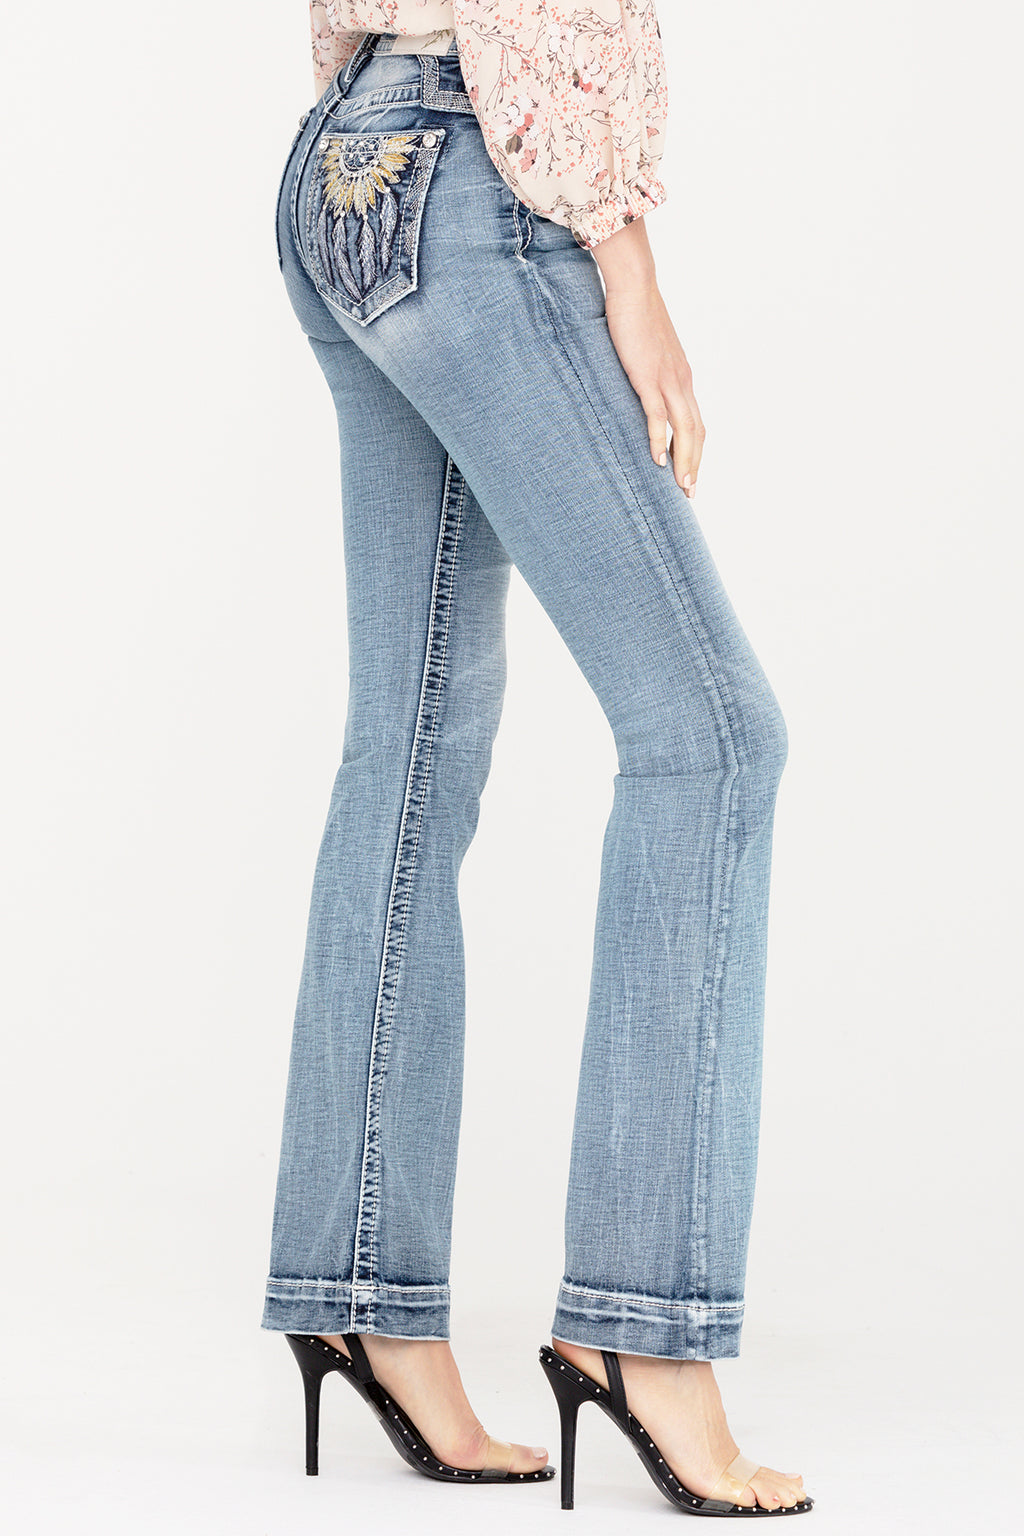 Sunshine Dreams Bootcut Jeans